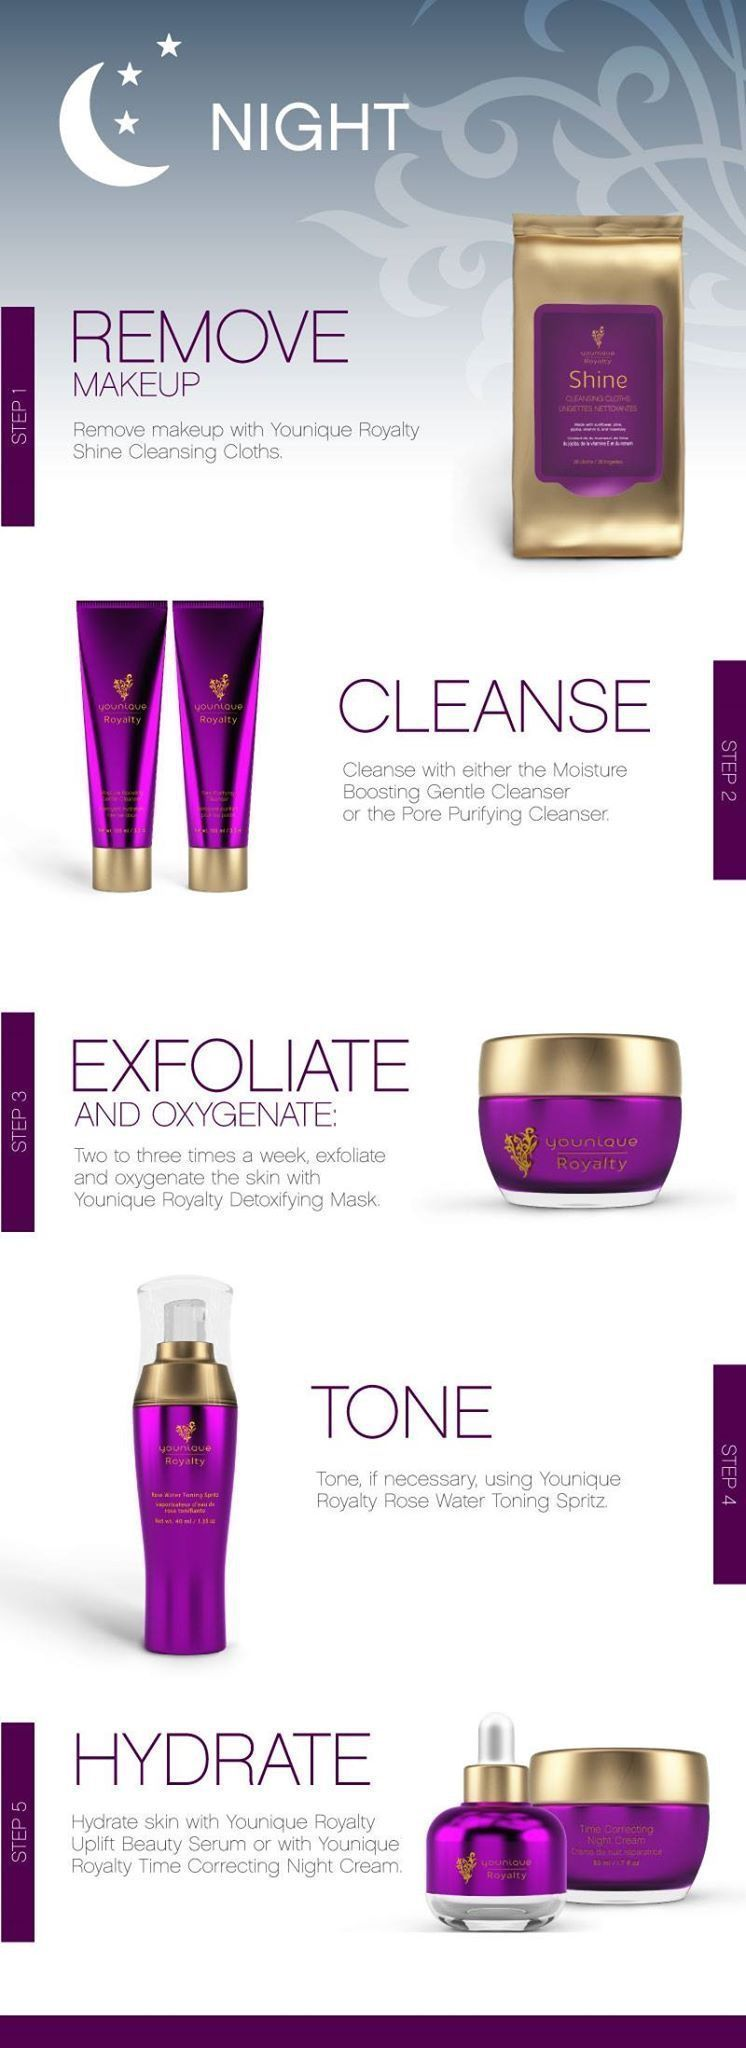 infographic to help you utilize our Younique Royalty Skincare line. #organicmakeupinfographic infographic to help you utilize our Younique Royalty Skincare line. #skincareinfographics infographic to help you utilize our Younique Royalty Skincare line. #organicmakeupinfographic infographic to help you utilize our Younique Royalty Skincare line.